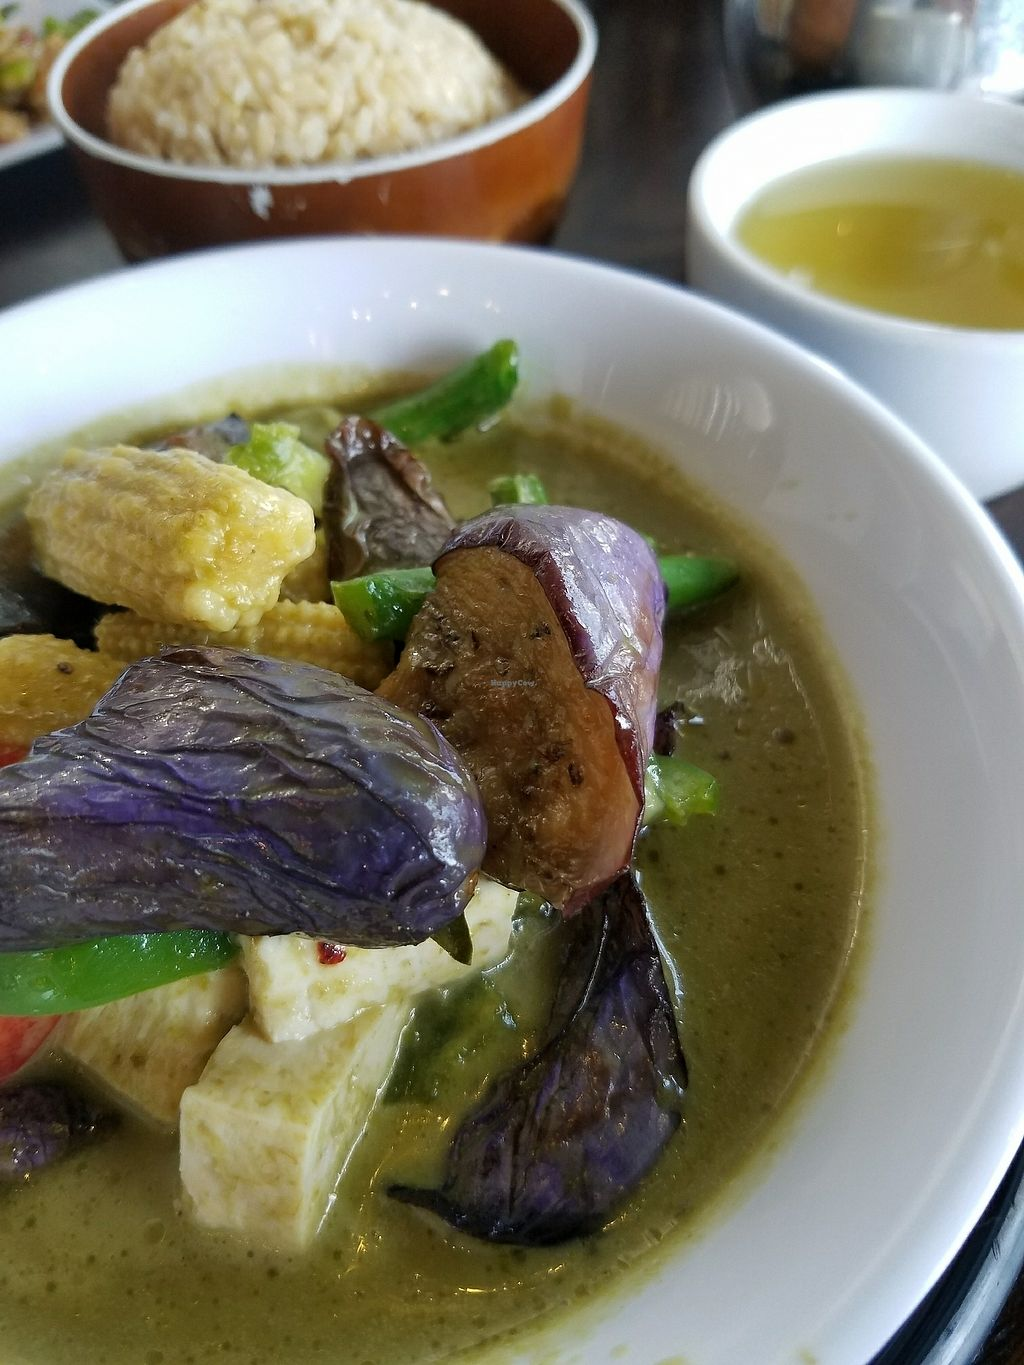 """Photo of Bodhi Thai Kitchen  by <a href=""""/members/profile/andreathinks"""">andreathinks</a> <br/>Spicy Green Curry with Tofu <br/> July 20, 2017  - <a href='/contact/abuse/image/21990/282323'>Report</a>"""